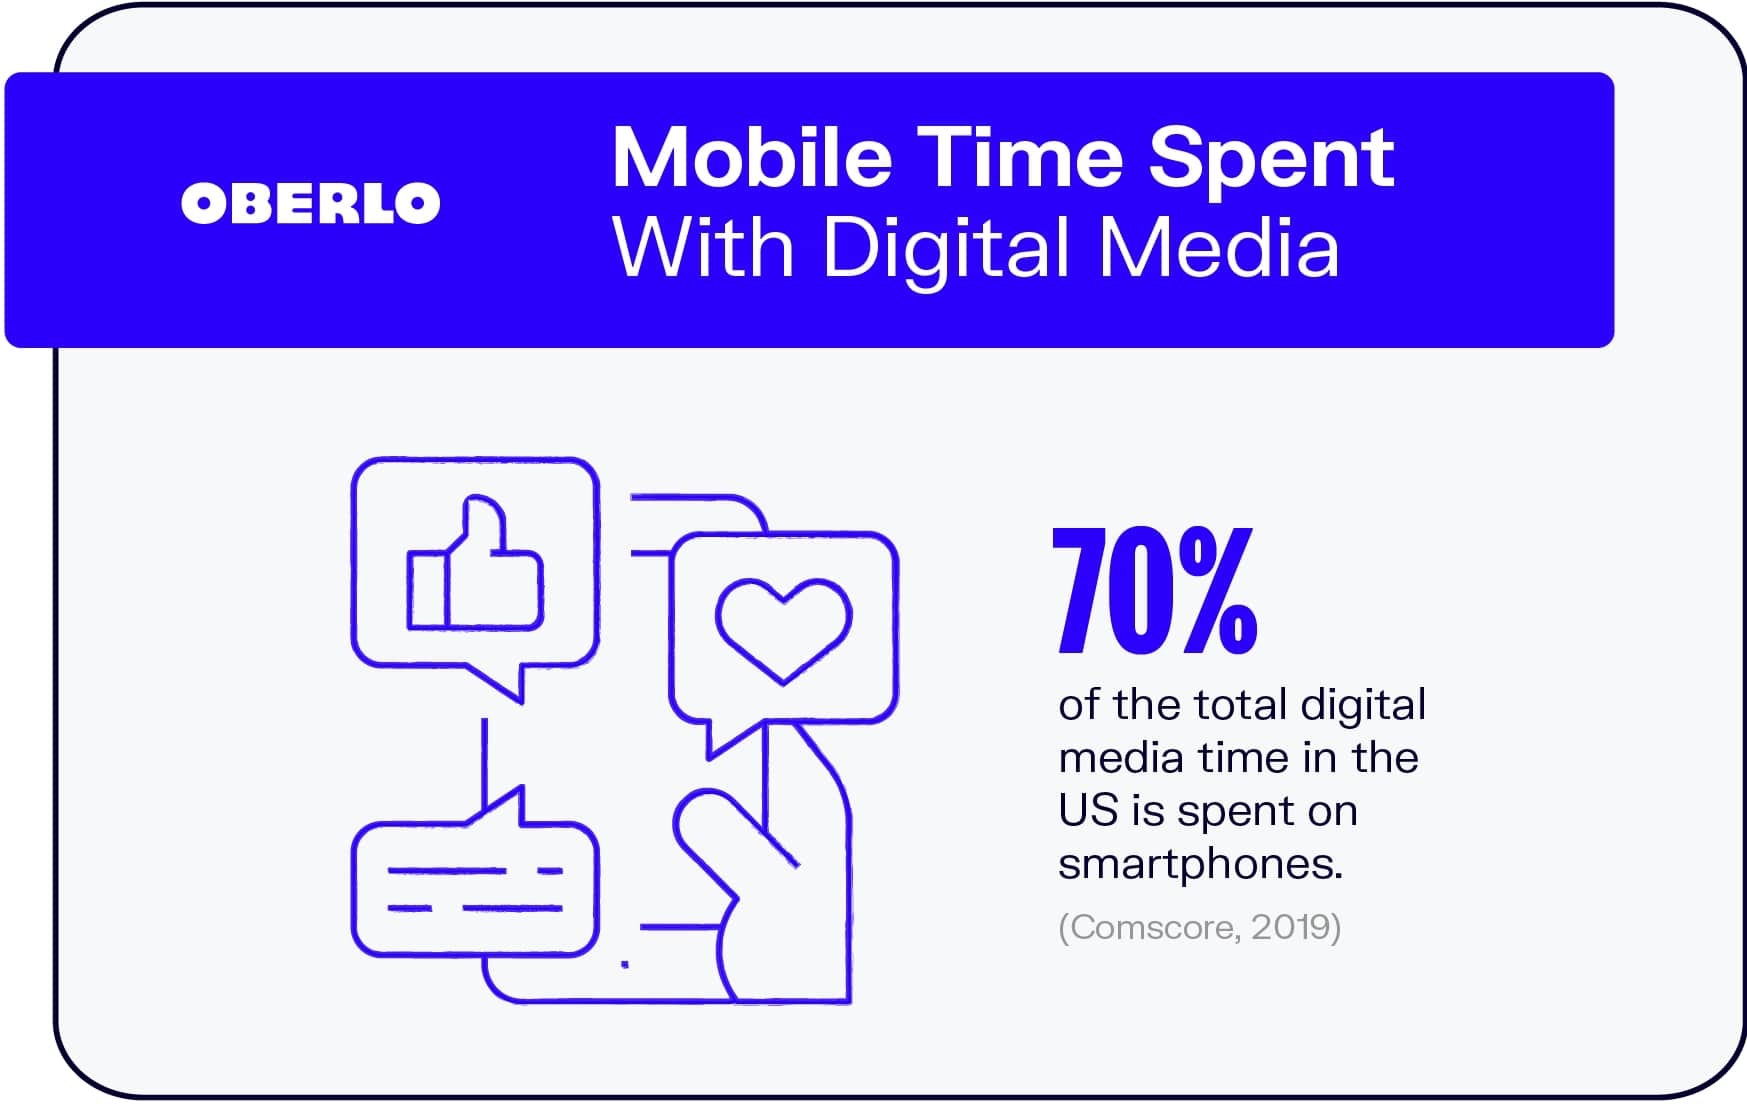 Mobile Time Spent With Digital Media